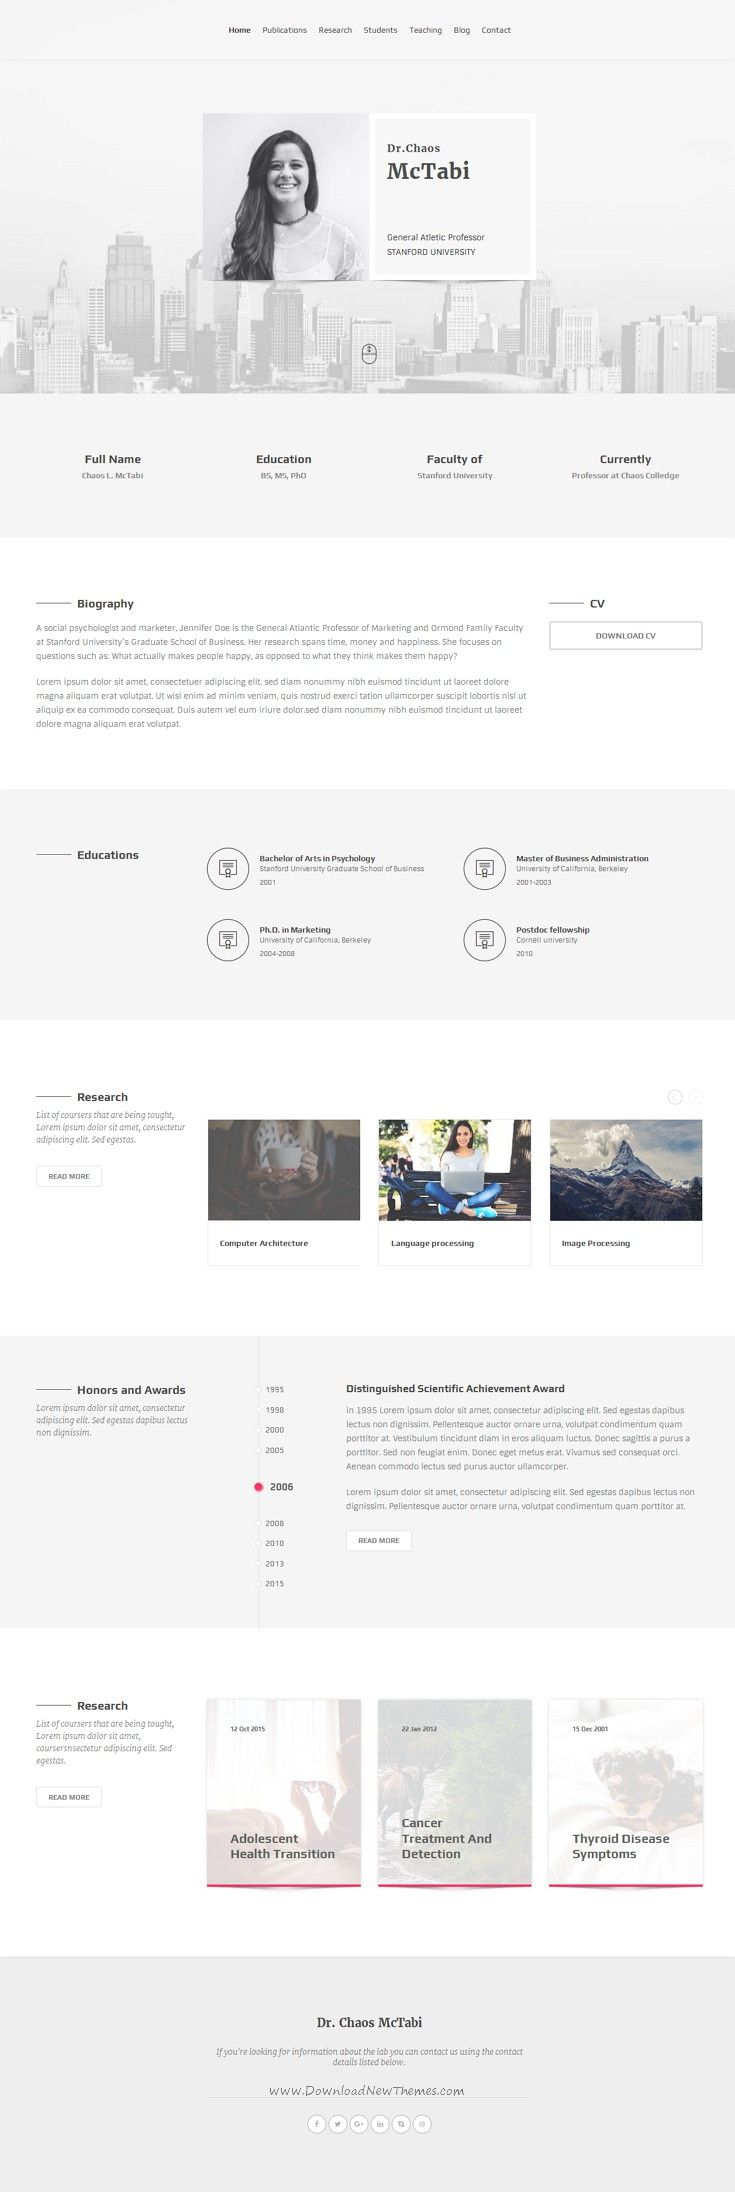 employee photo directory template